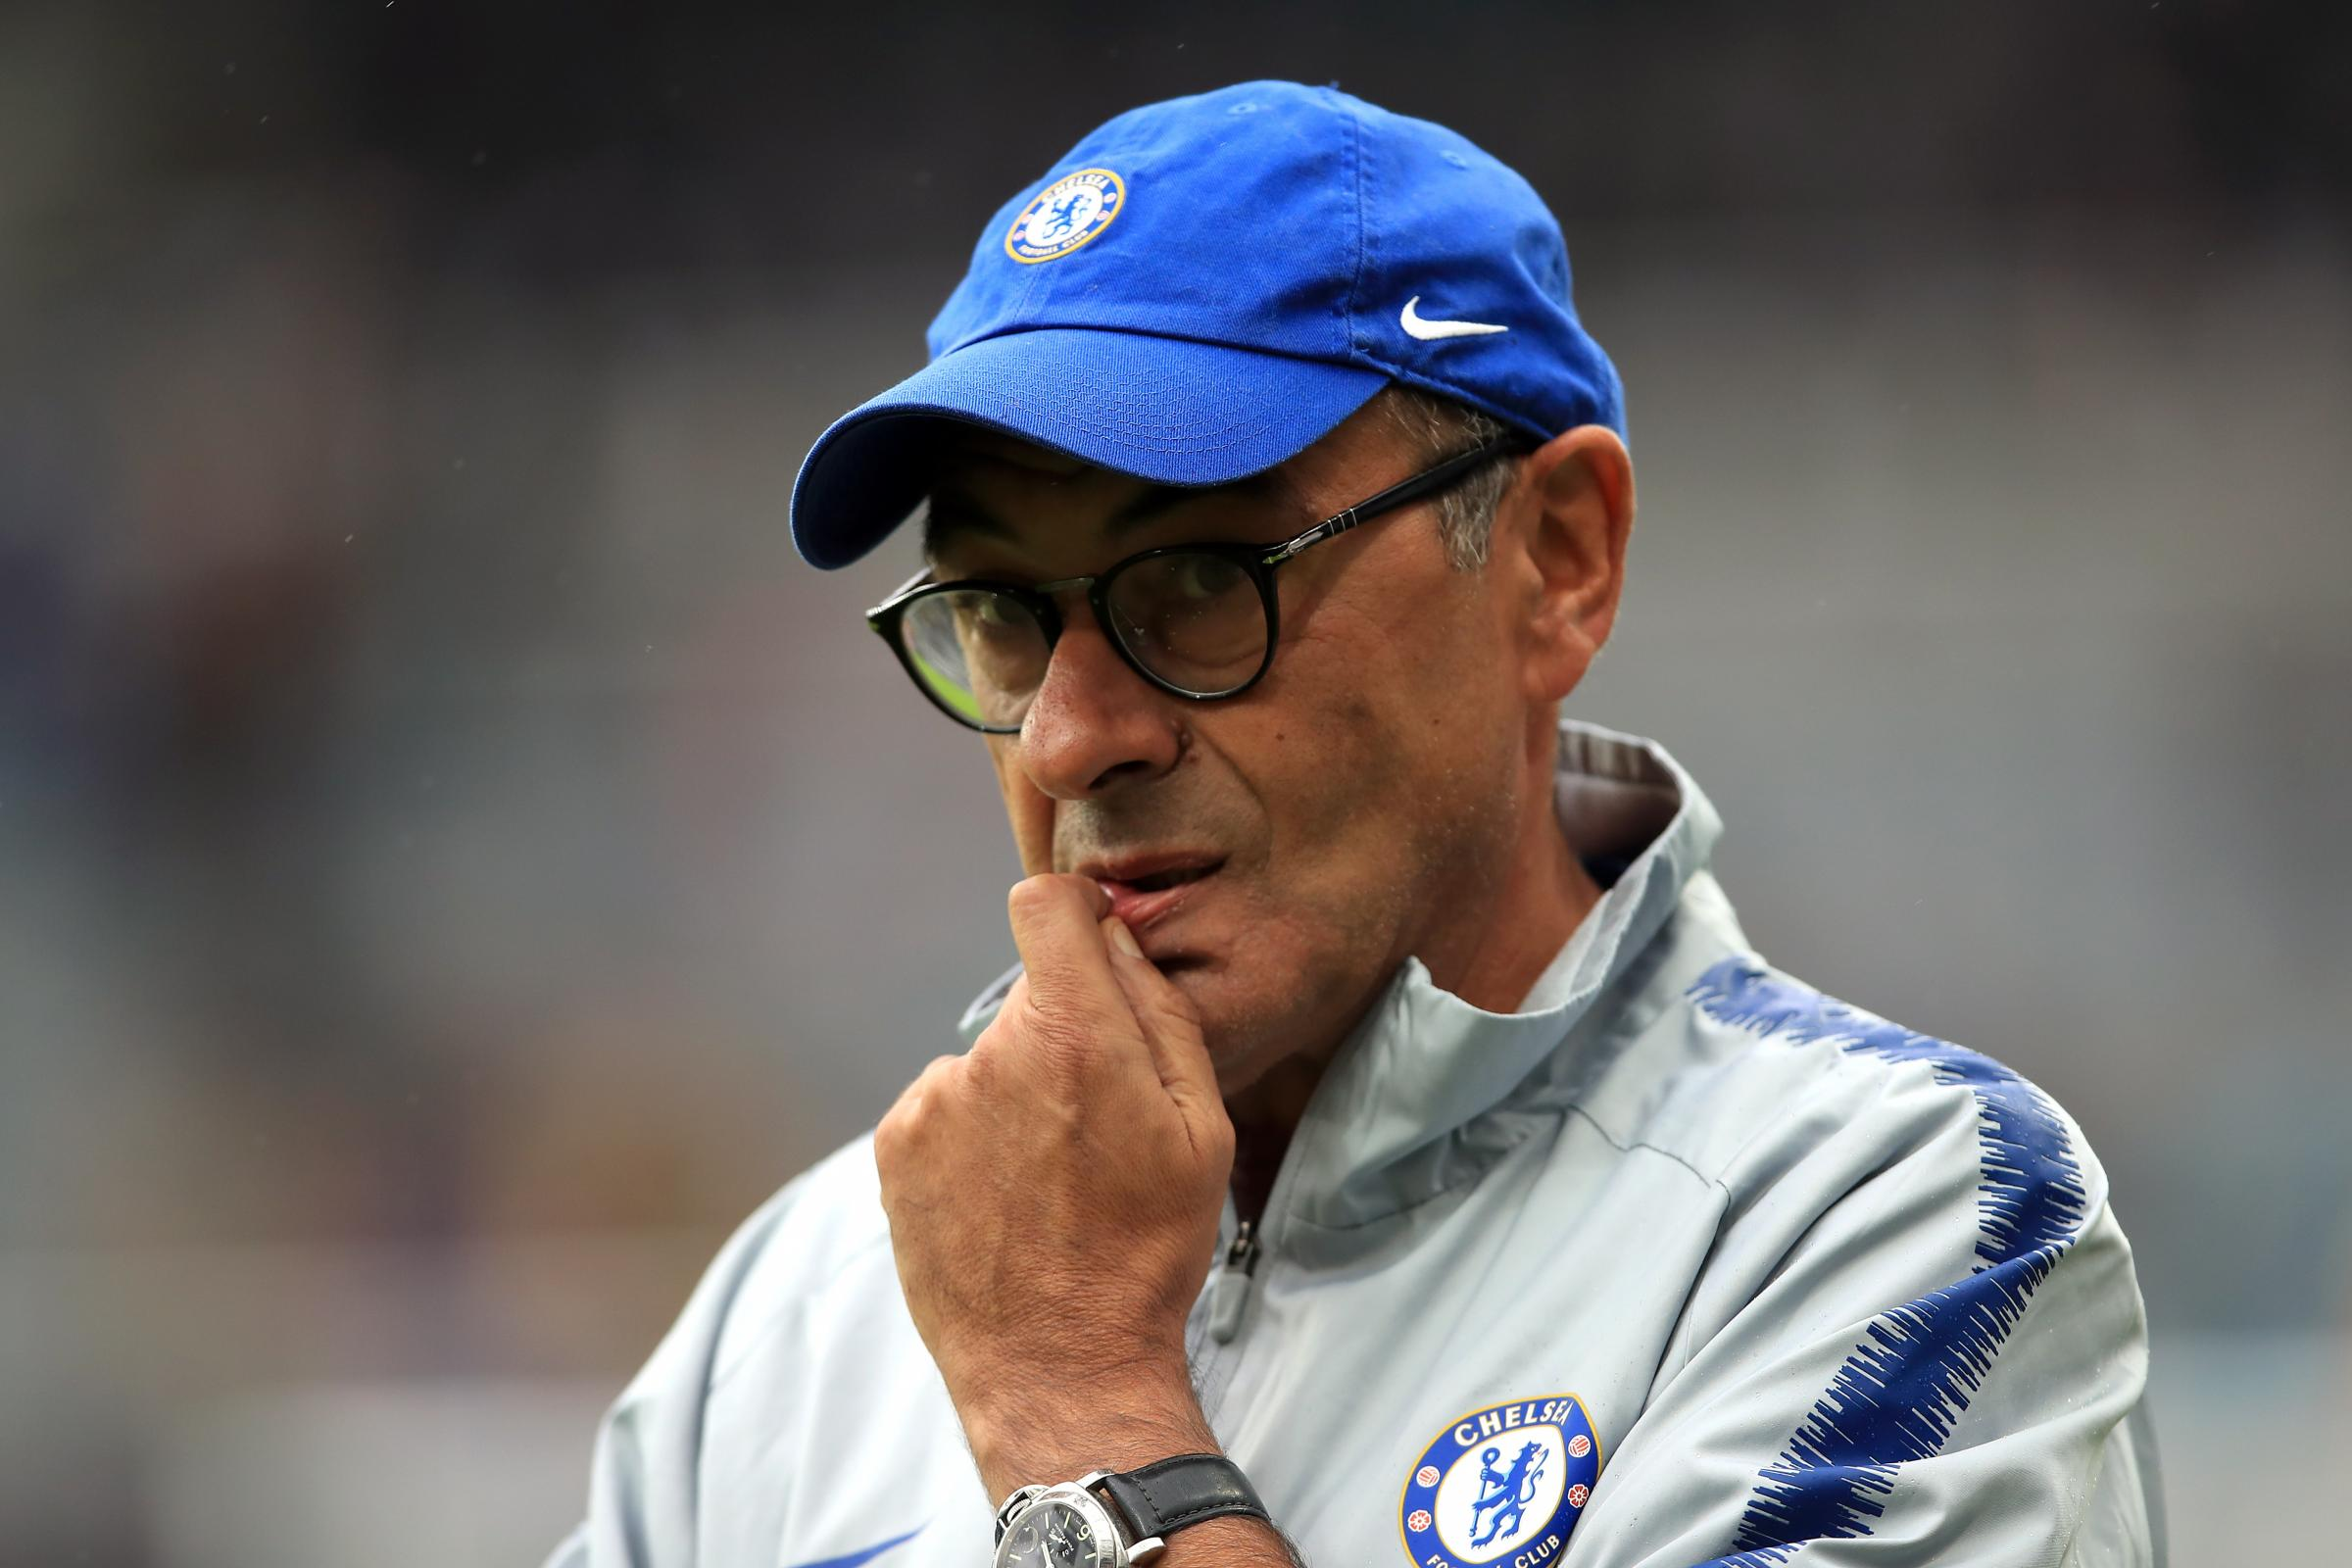 Maurizio Sarri's Chelsea side were held at West Ham